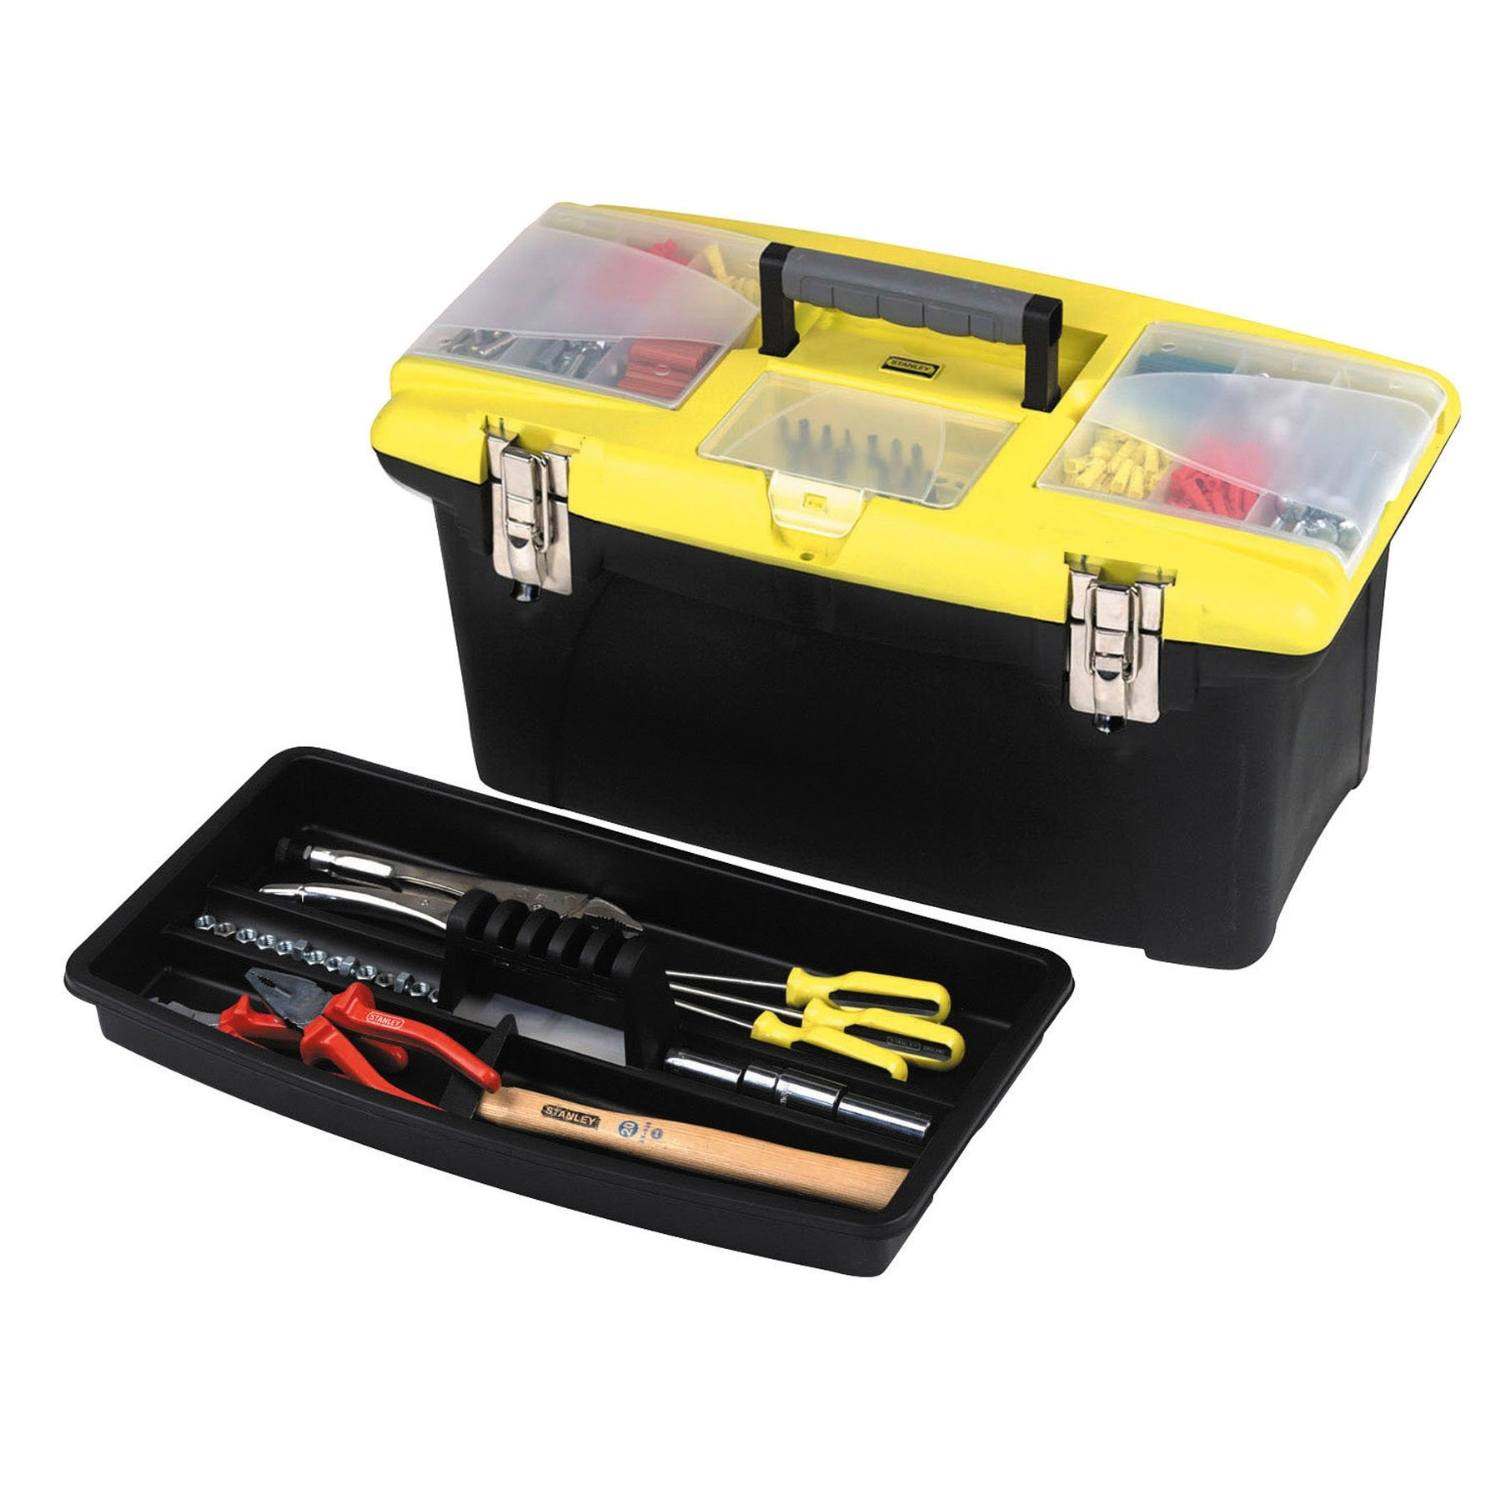 Stanley 192905 Jumbo Toolbox 16-inch with Tray